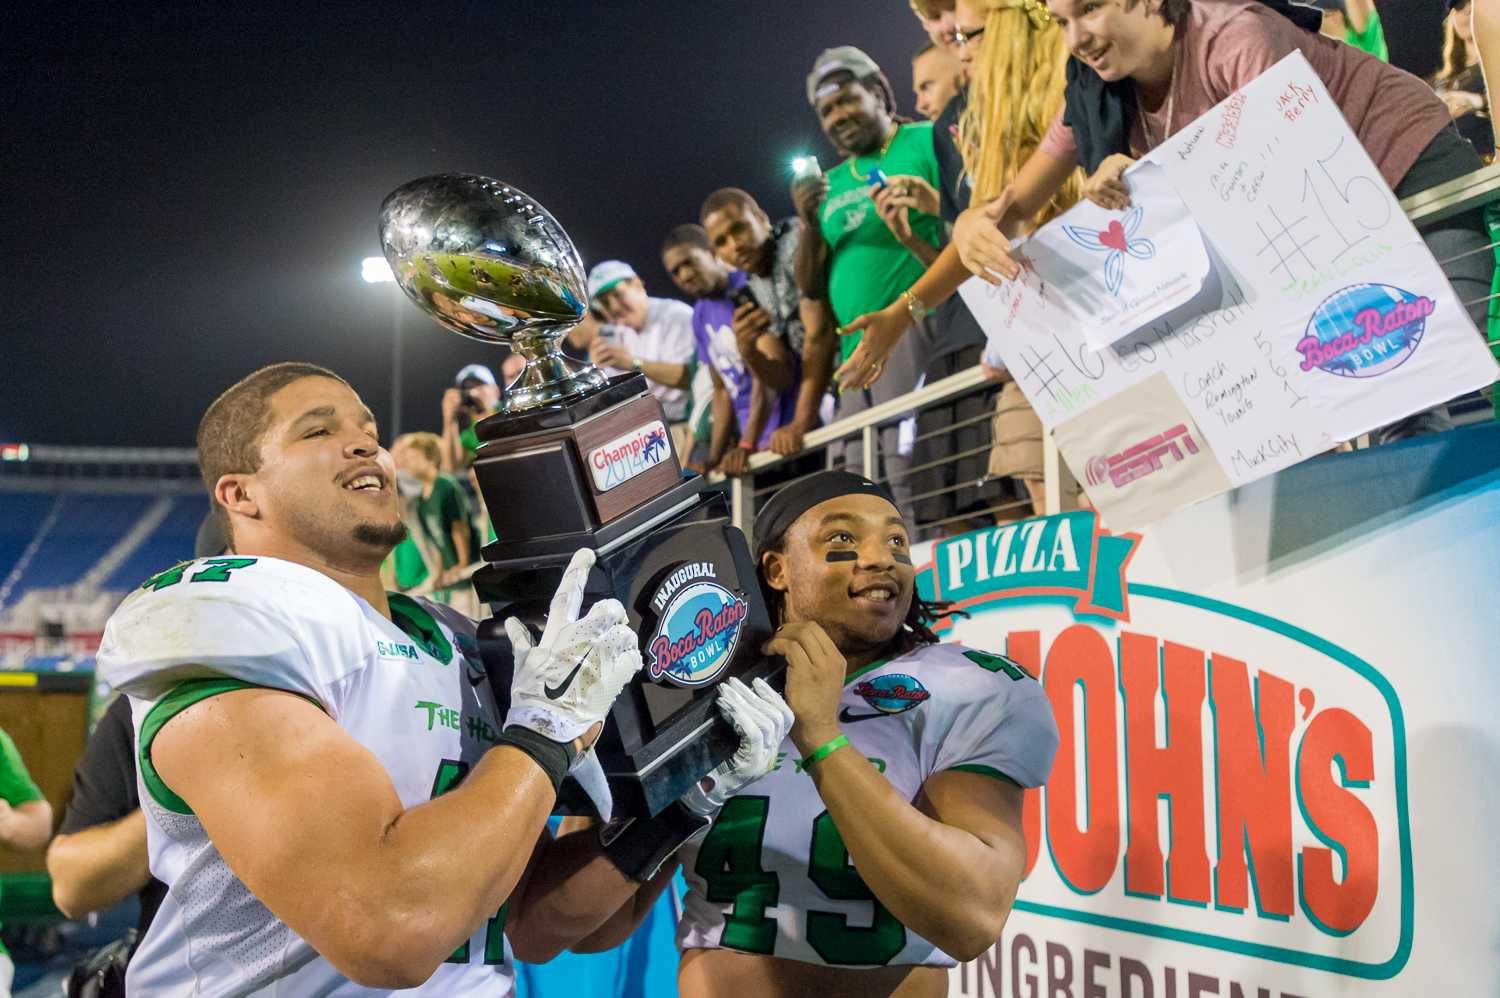 Running back Devon Johnson and linebacker Cortez Carter of the Thundering Herd hold the Boca Raton Bowl trophy in front of their cheering fans.